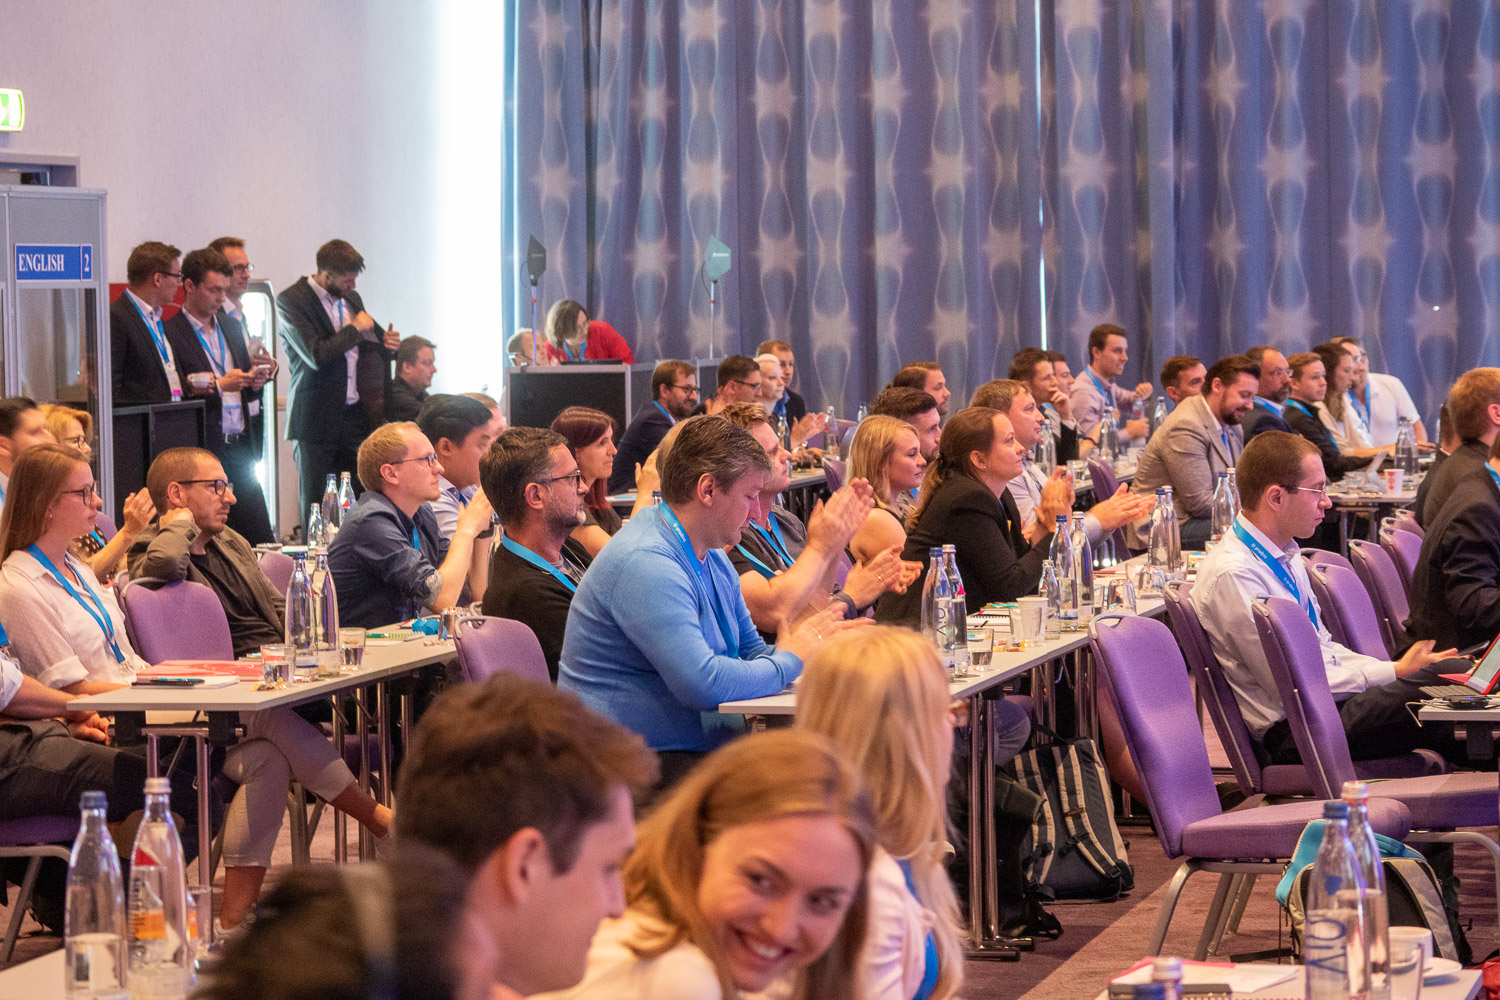 prudsys retail intelligence summit 2019 | Conference on AI in Retail | Audience